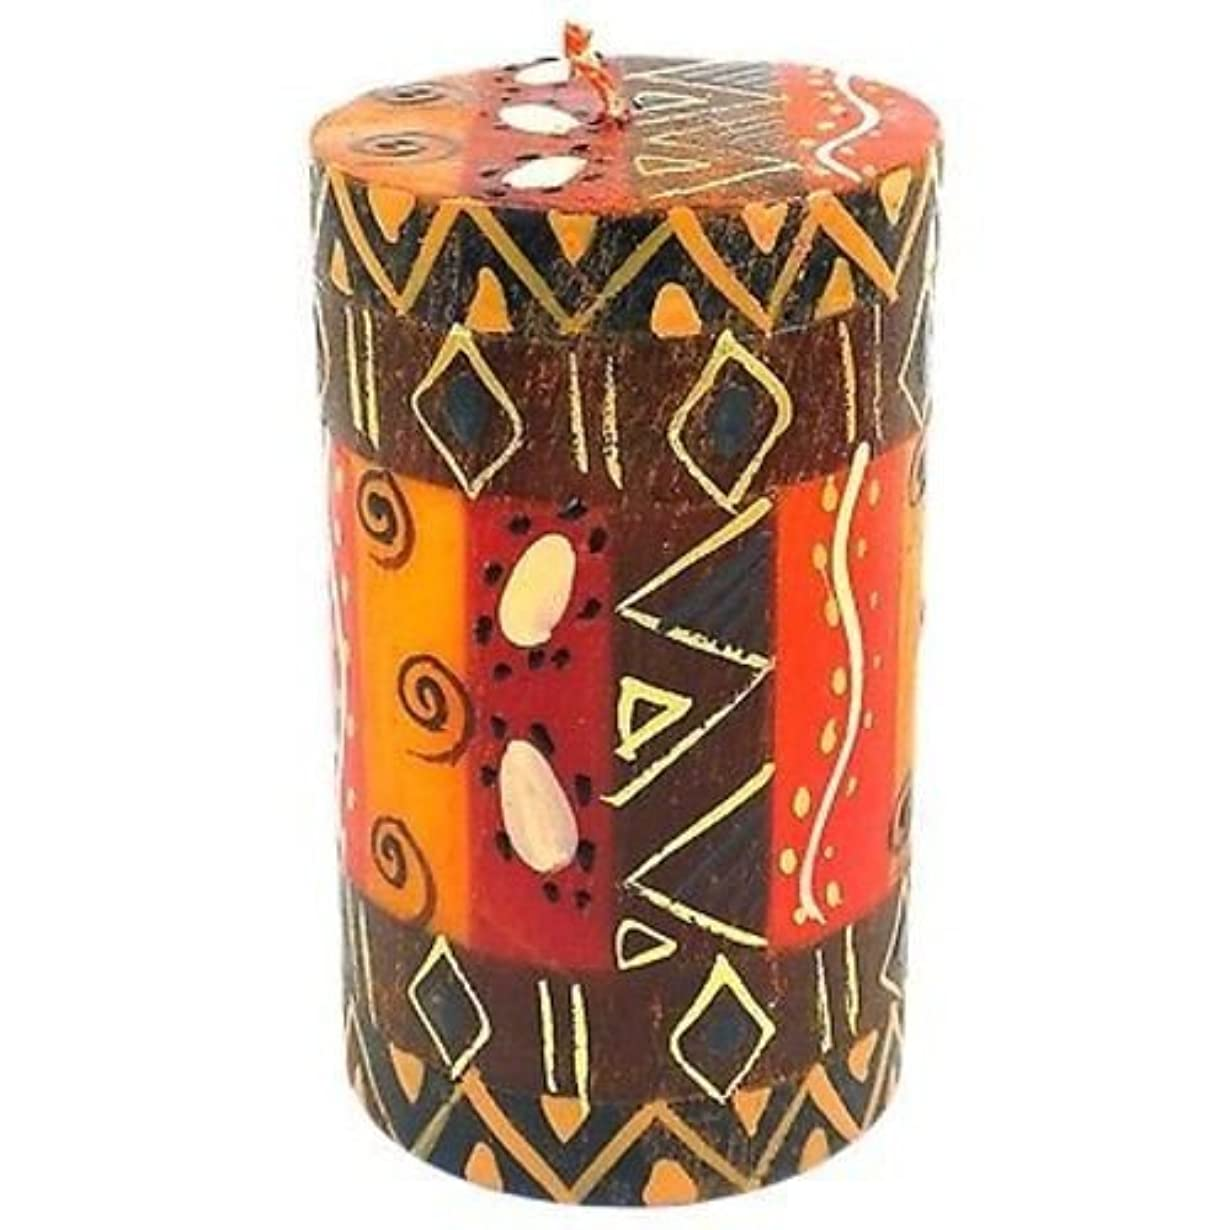 たらい知覚的ほめるNobunto Single Boxed Hand-Painted Pillar Candle - Bongazi Design